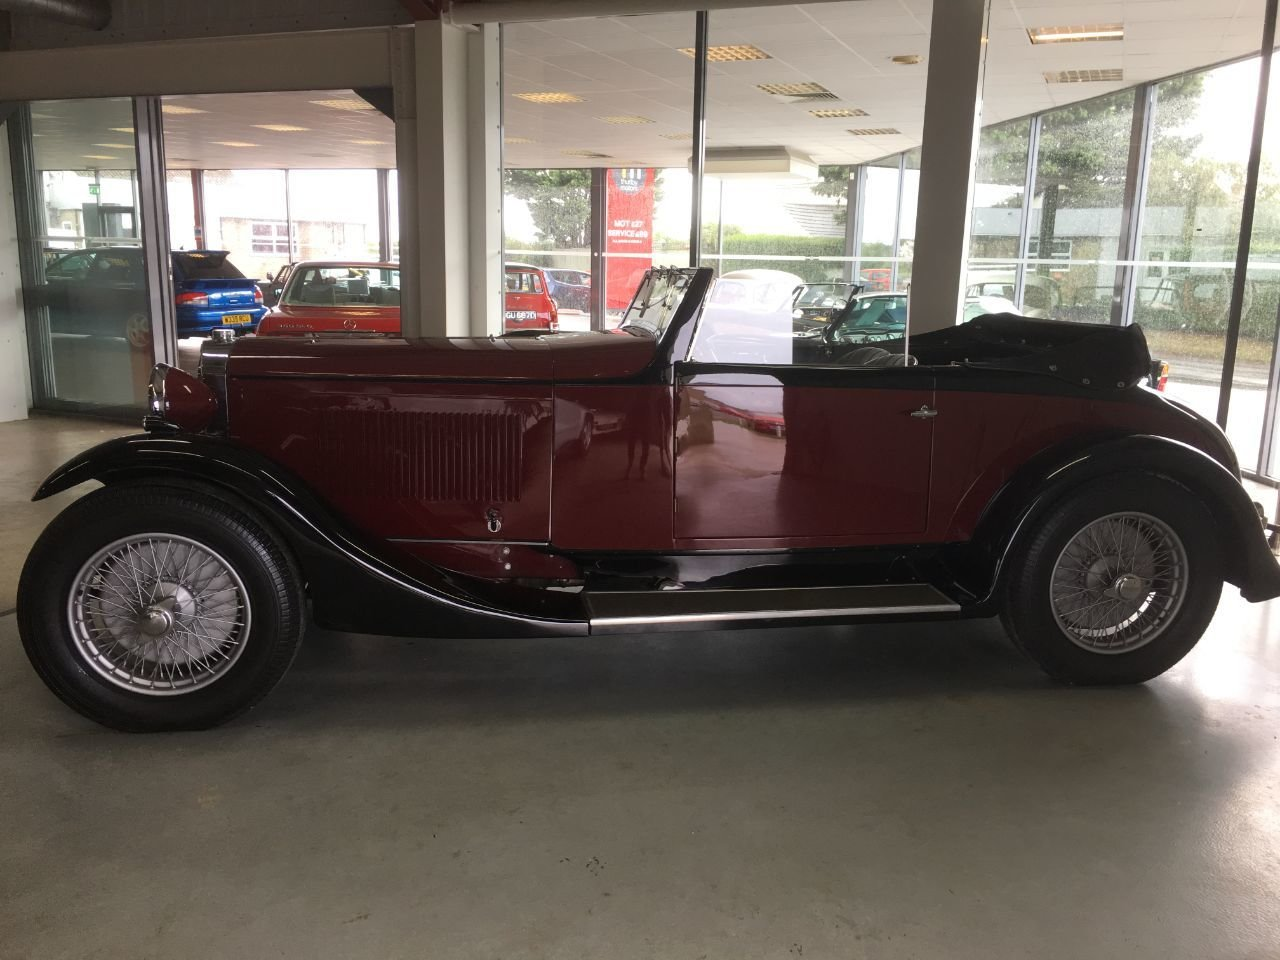 1932 Sunbeam 20 drophead coupe For Sale (picture 3 of 4)